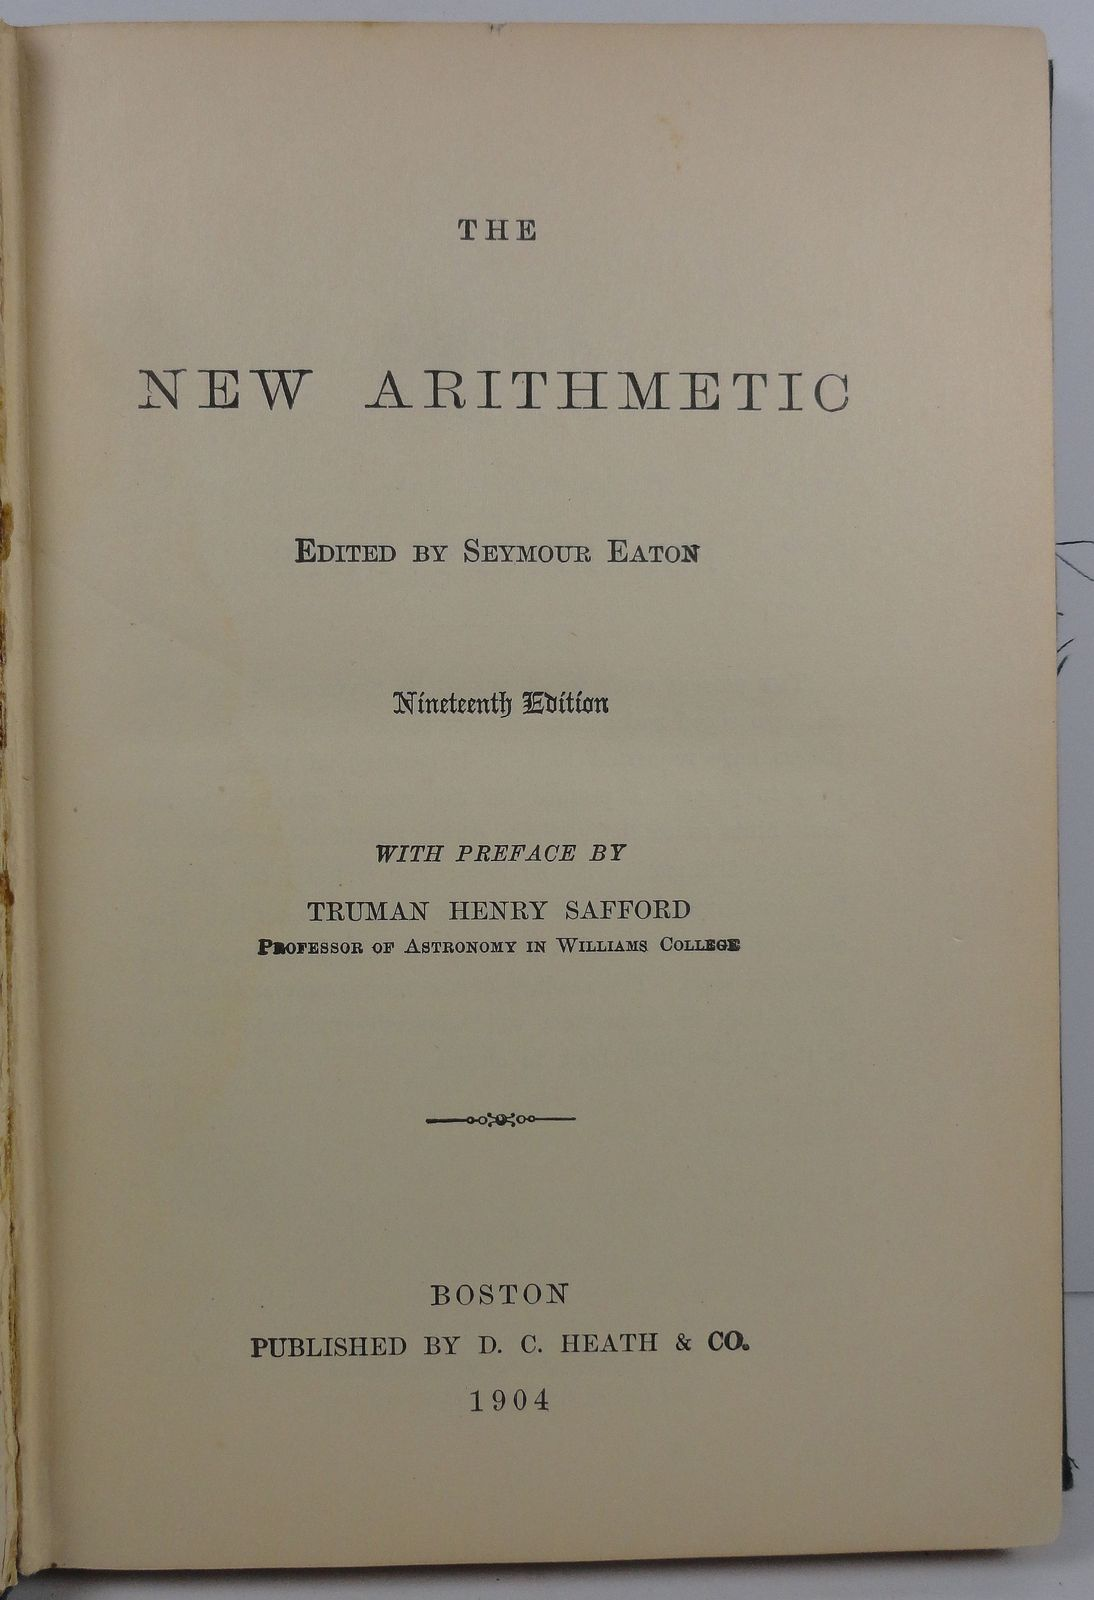 The New Arithmetic by Seymour Eaton Nineteenth Edition 1904